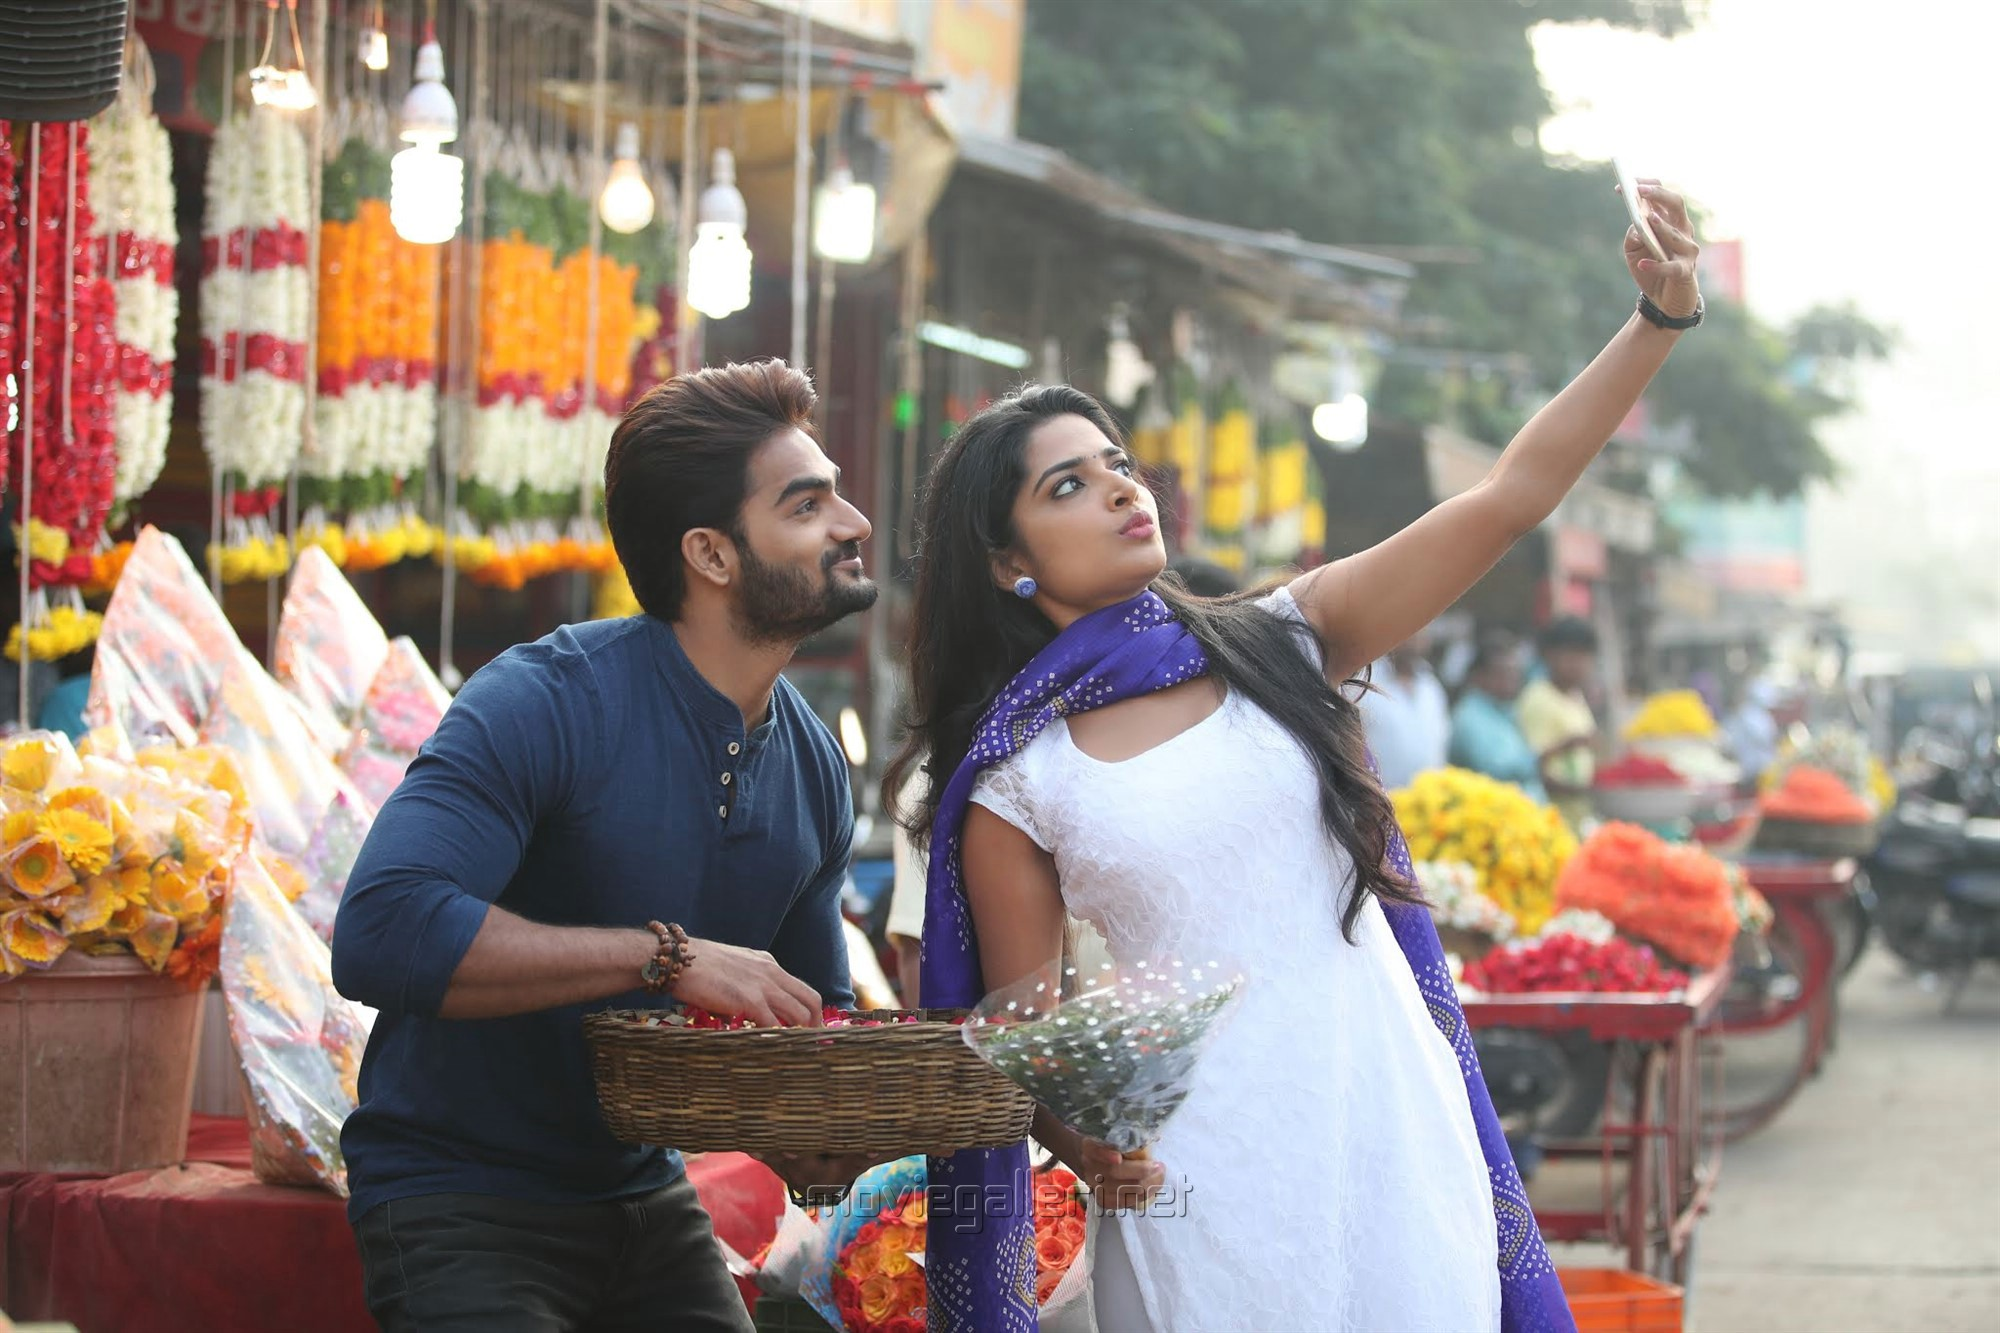 Karthikeya, Anagha in Guna 369 Movie Images HD